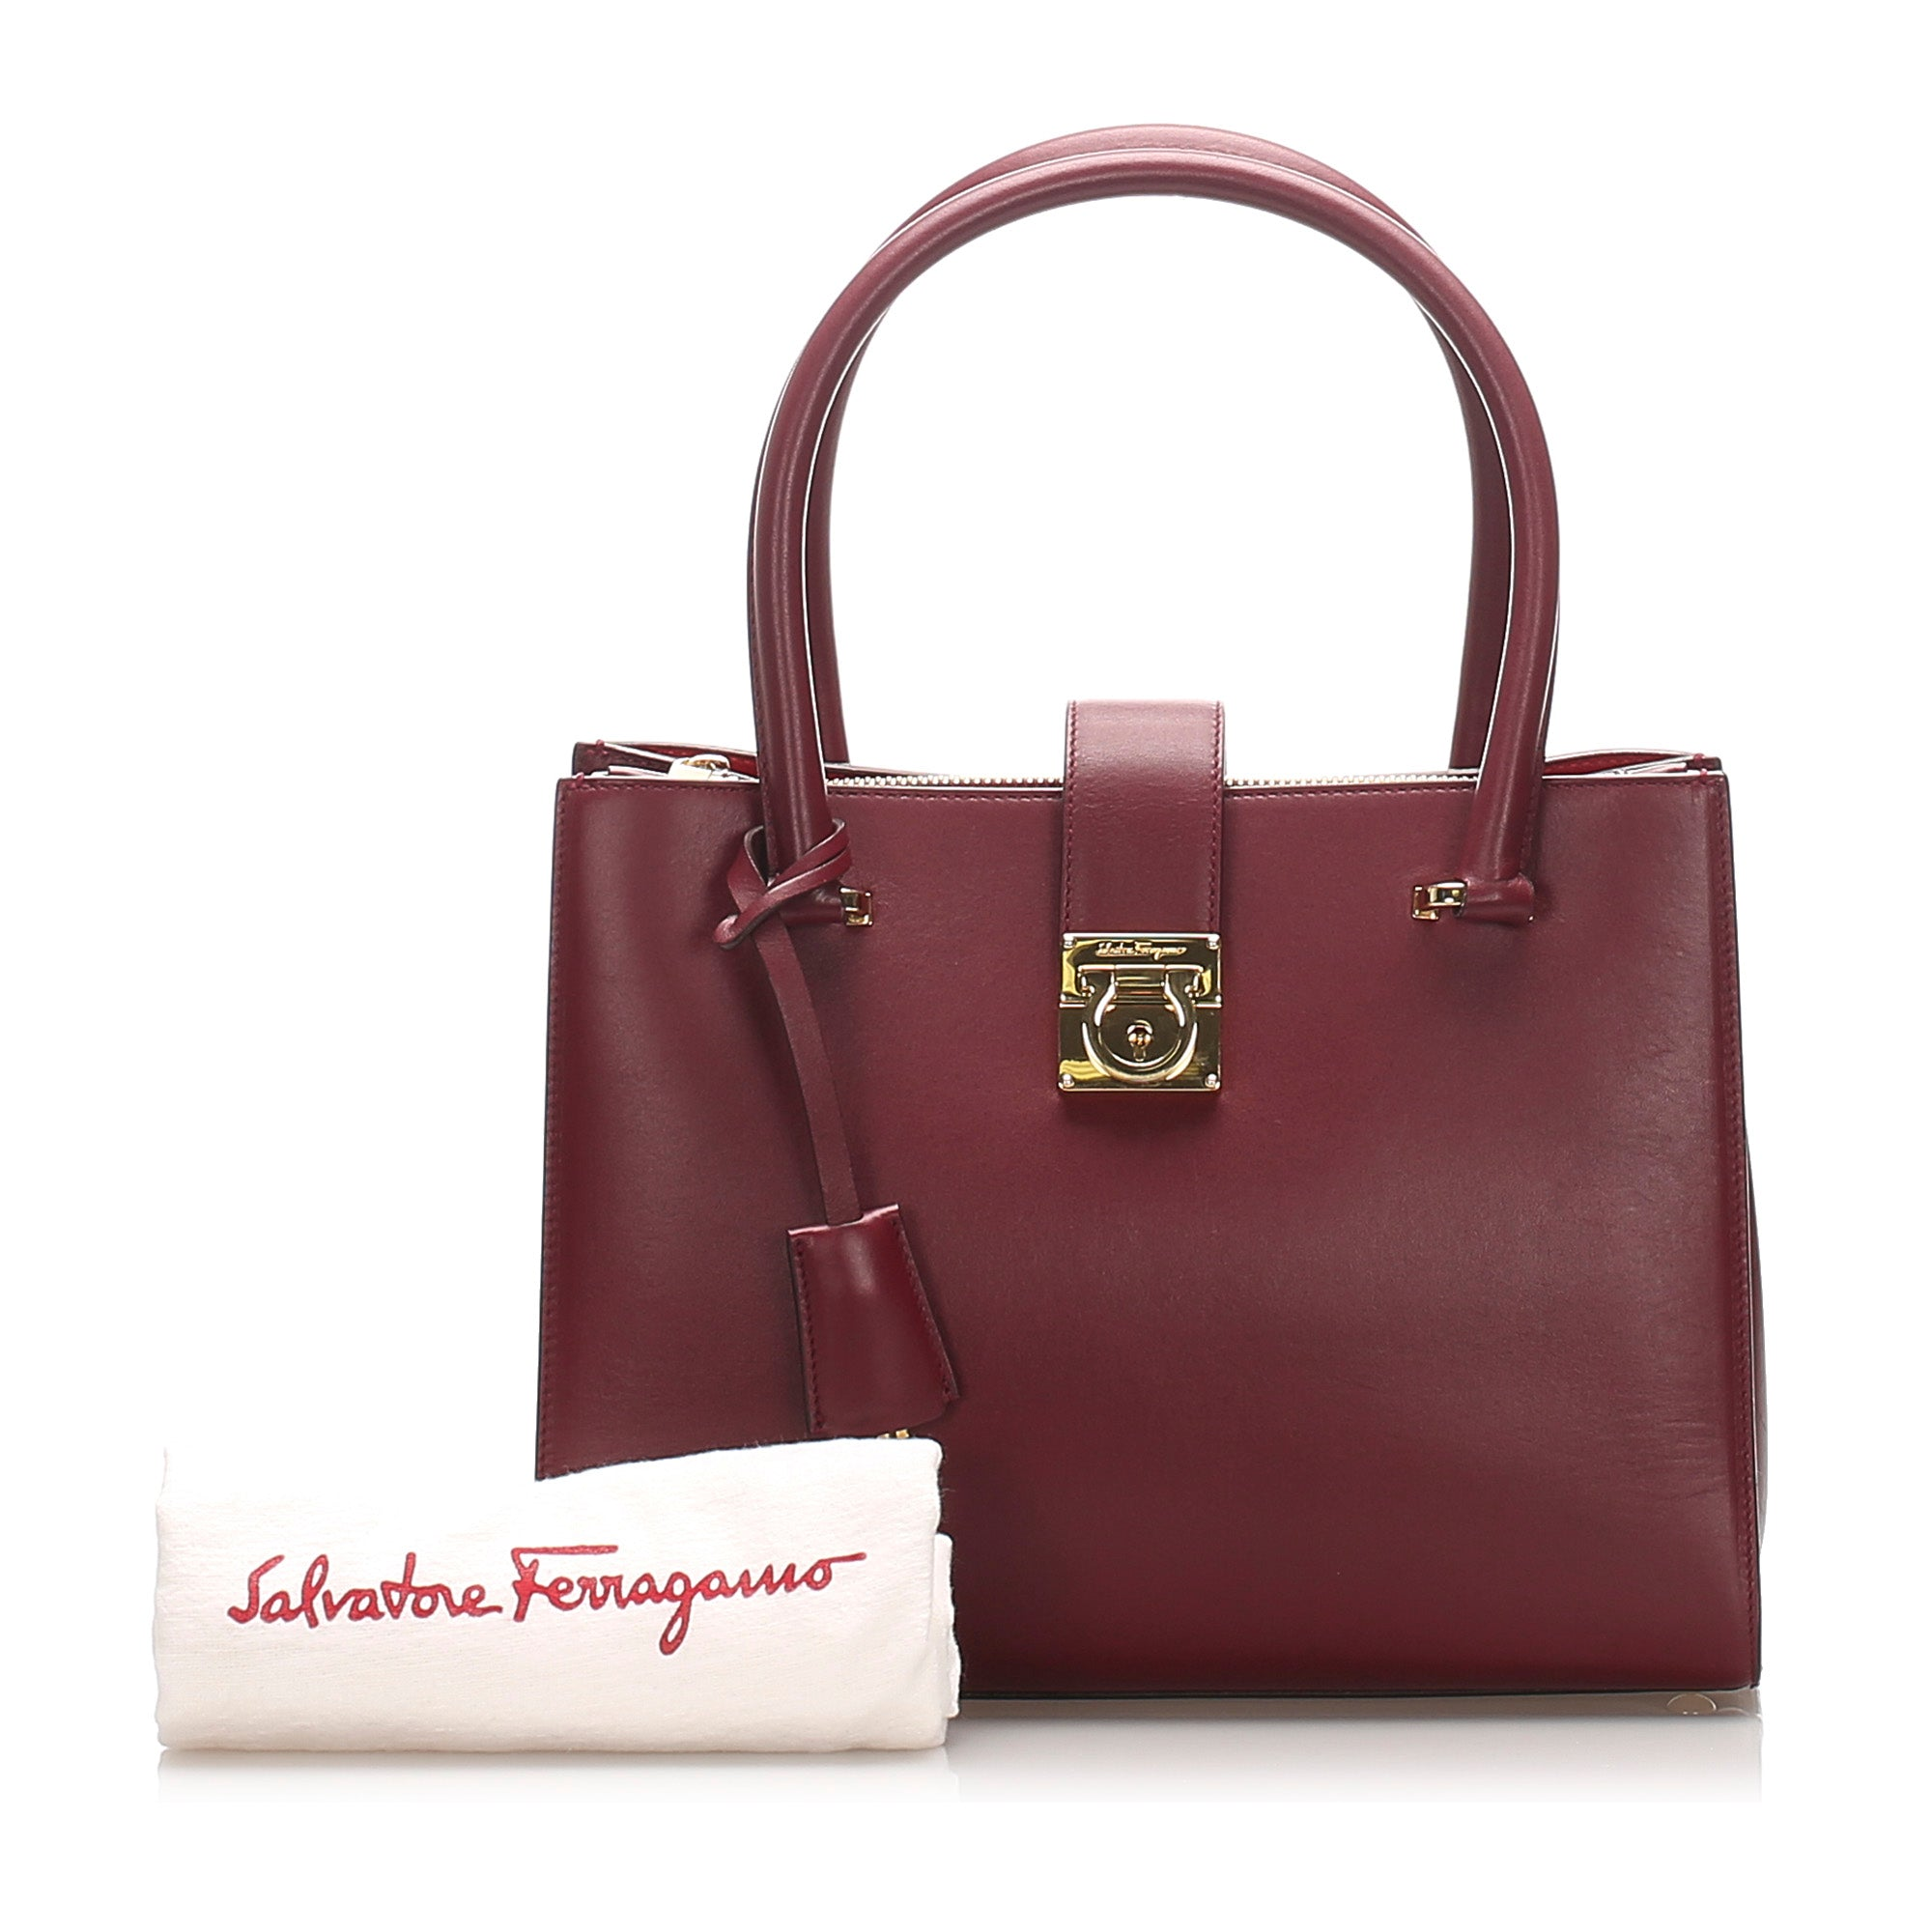 Ferragamo Red Gancini Leather Handbag